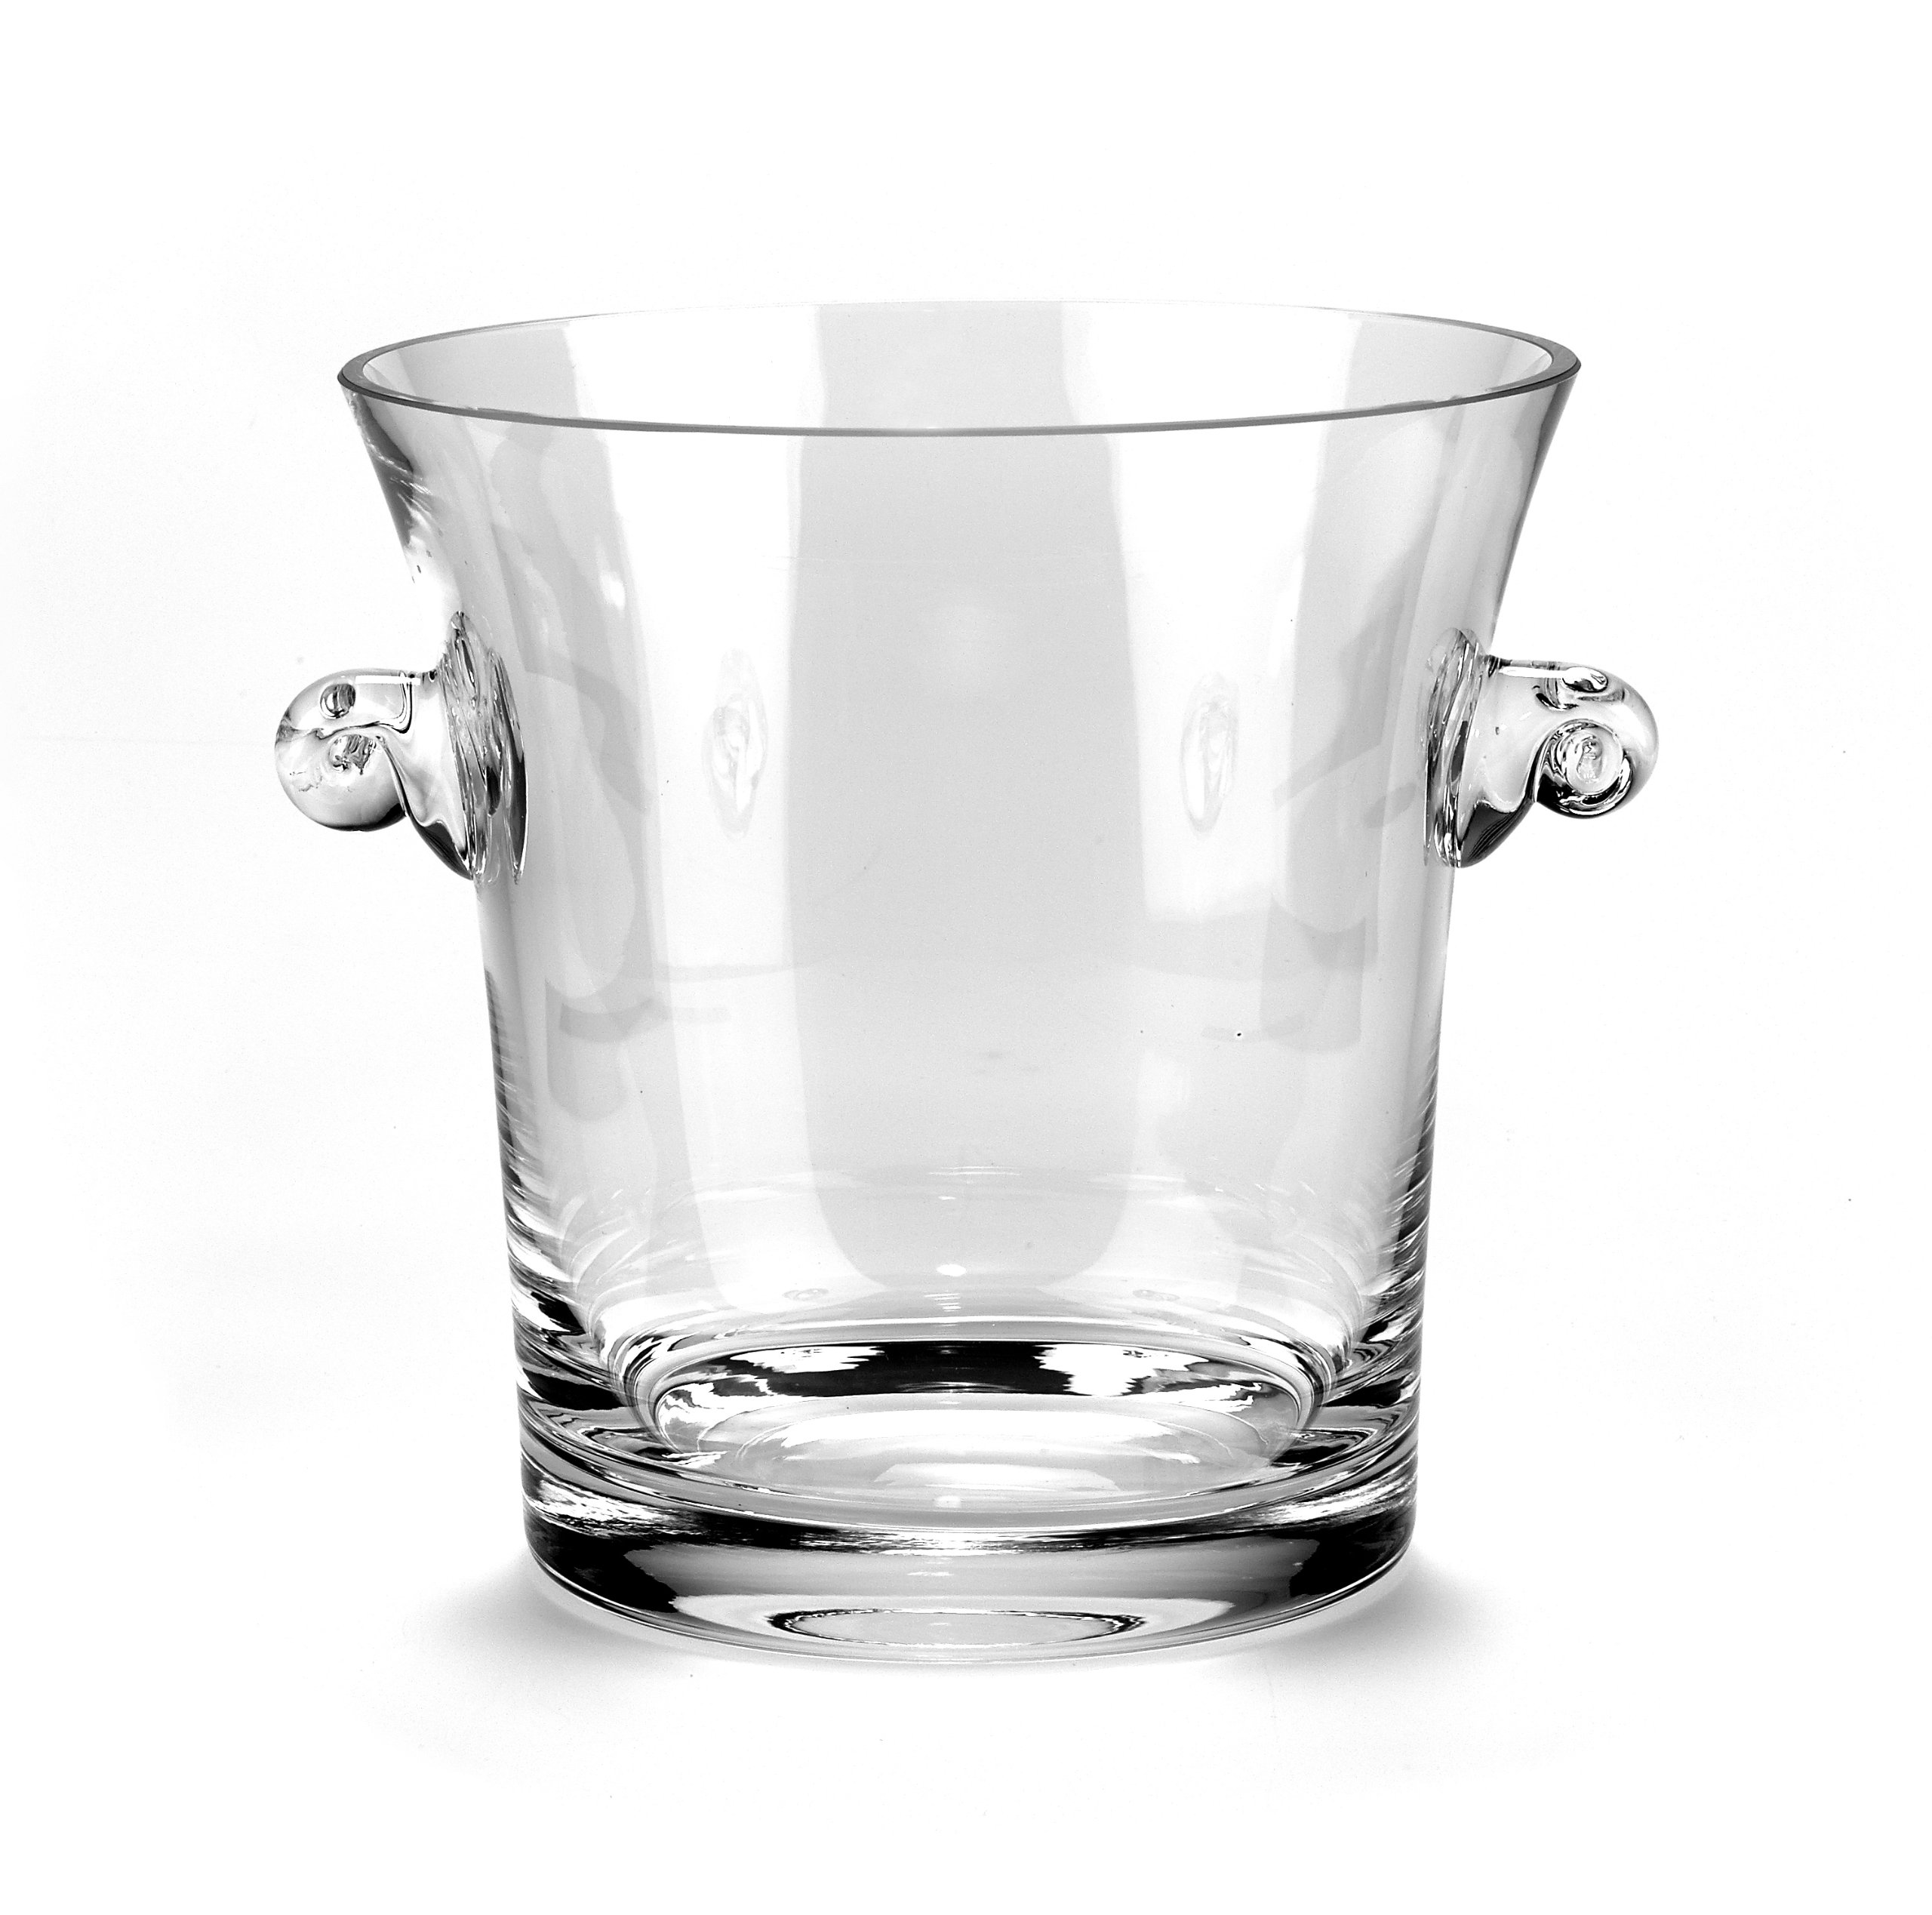 ''The Manhattan'' Style Wine and Champagne Chiller Bucket (1.5 L) - Lead-Free Crystal Elegantly Handcrafted w/Handles - Hand Blown Fine Polish Crystal - for Parties, Weddings, and Engagements by Badash (Image #1)